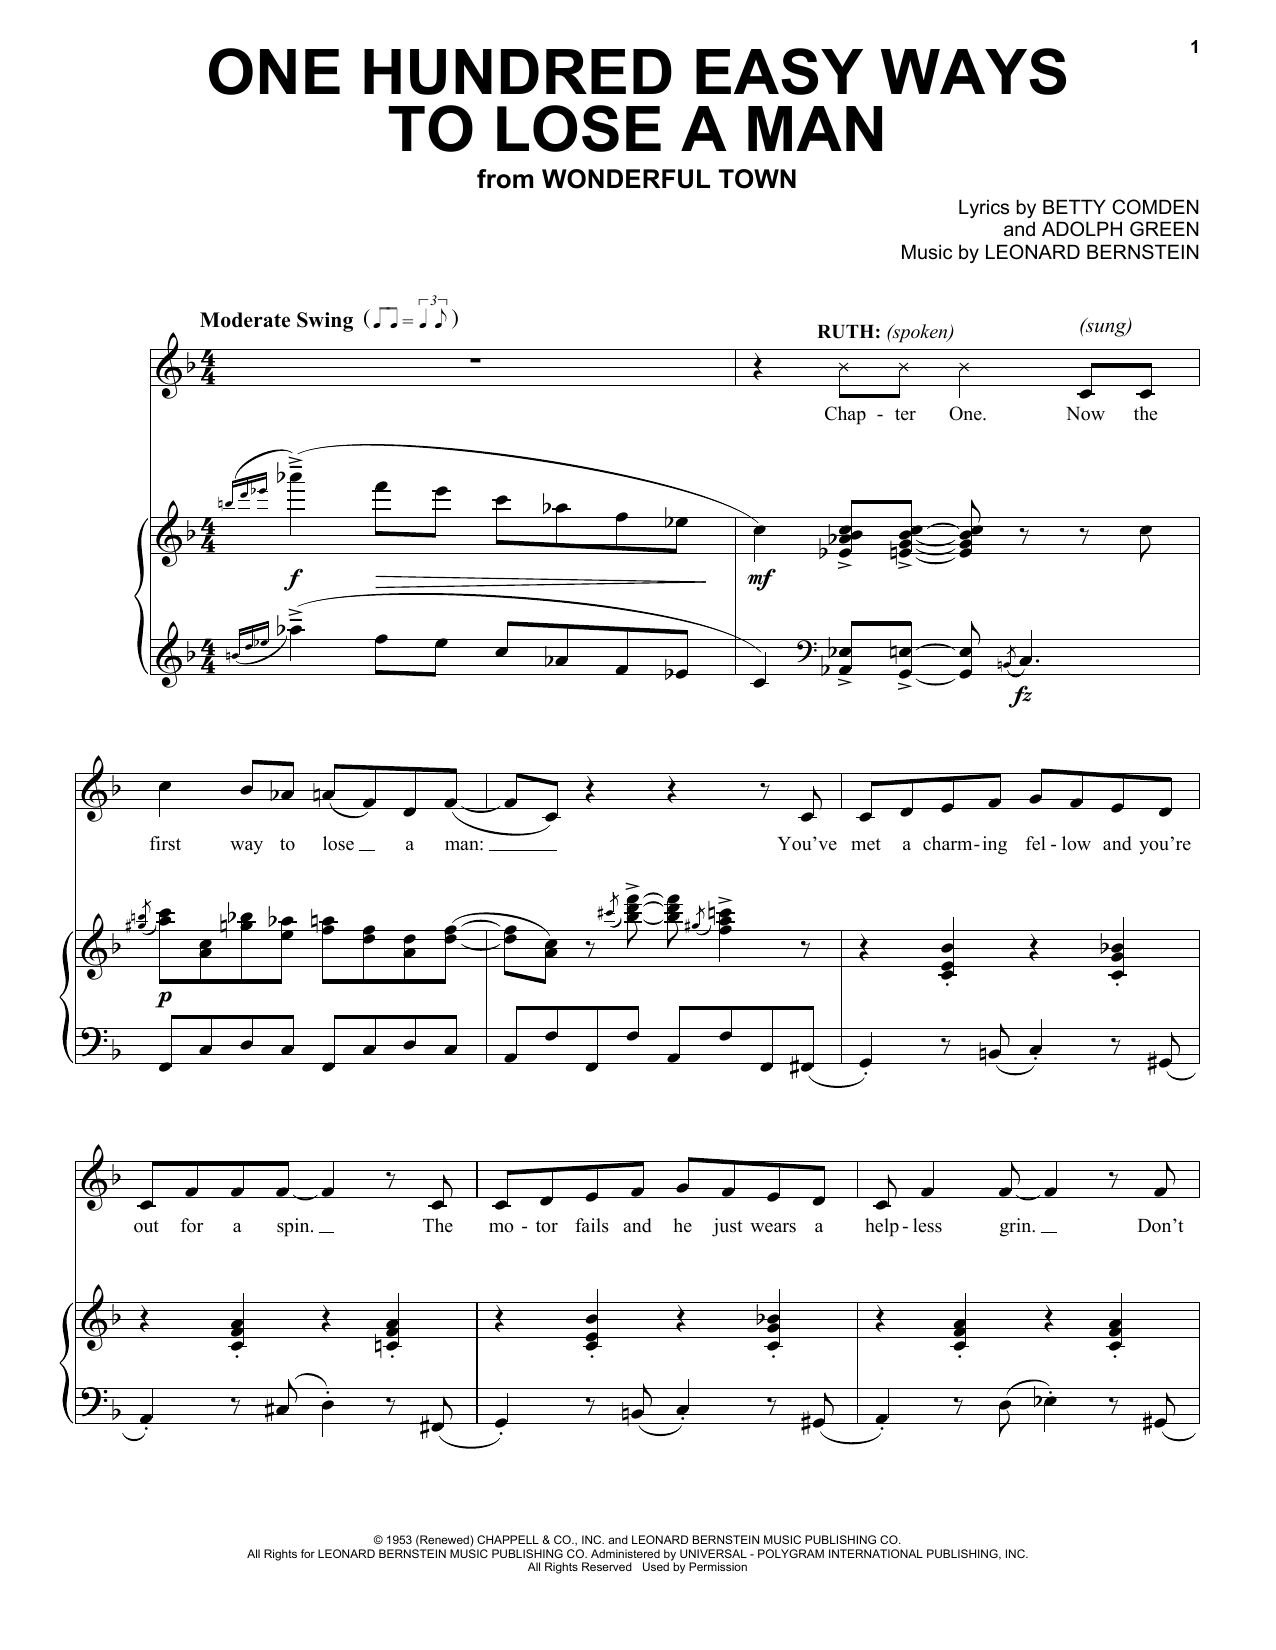 graphic relating to Free Printable Broadway Sheet Music named Adolph Inexperienced A person Hundred Basic Tactics Toward Drop A Gentleman Sheet Audio Notes, Chords Down load Printable Piano Vocal - SKU: 188462